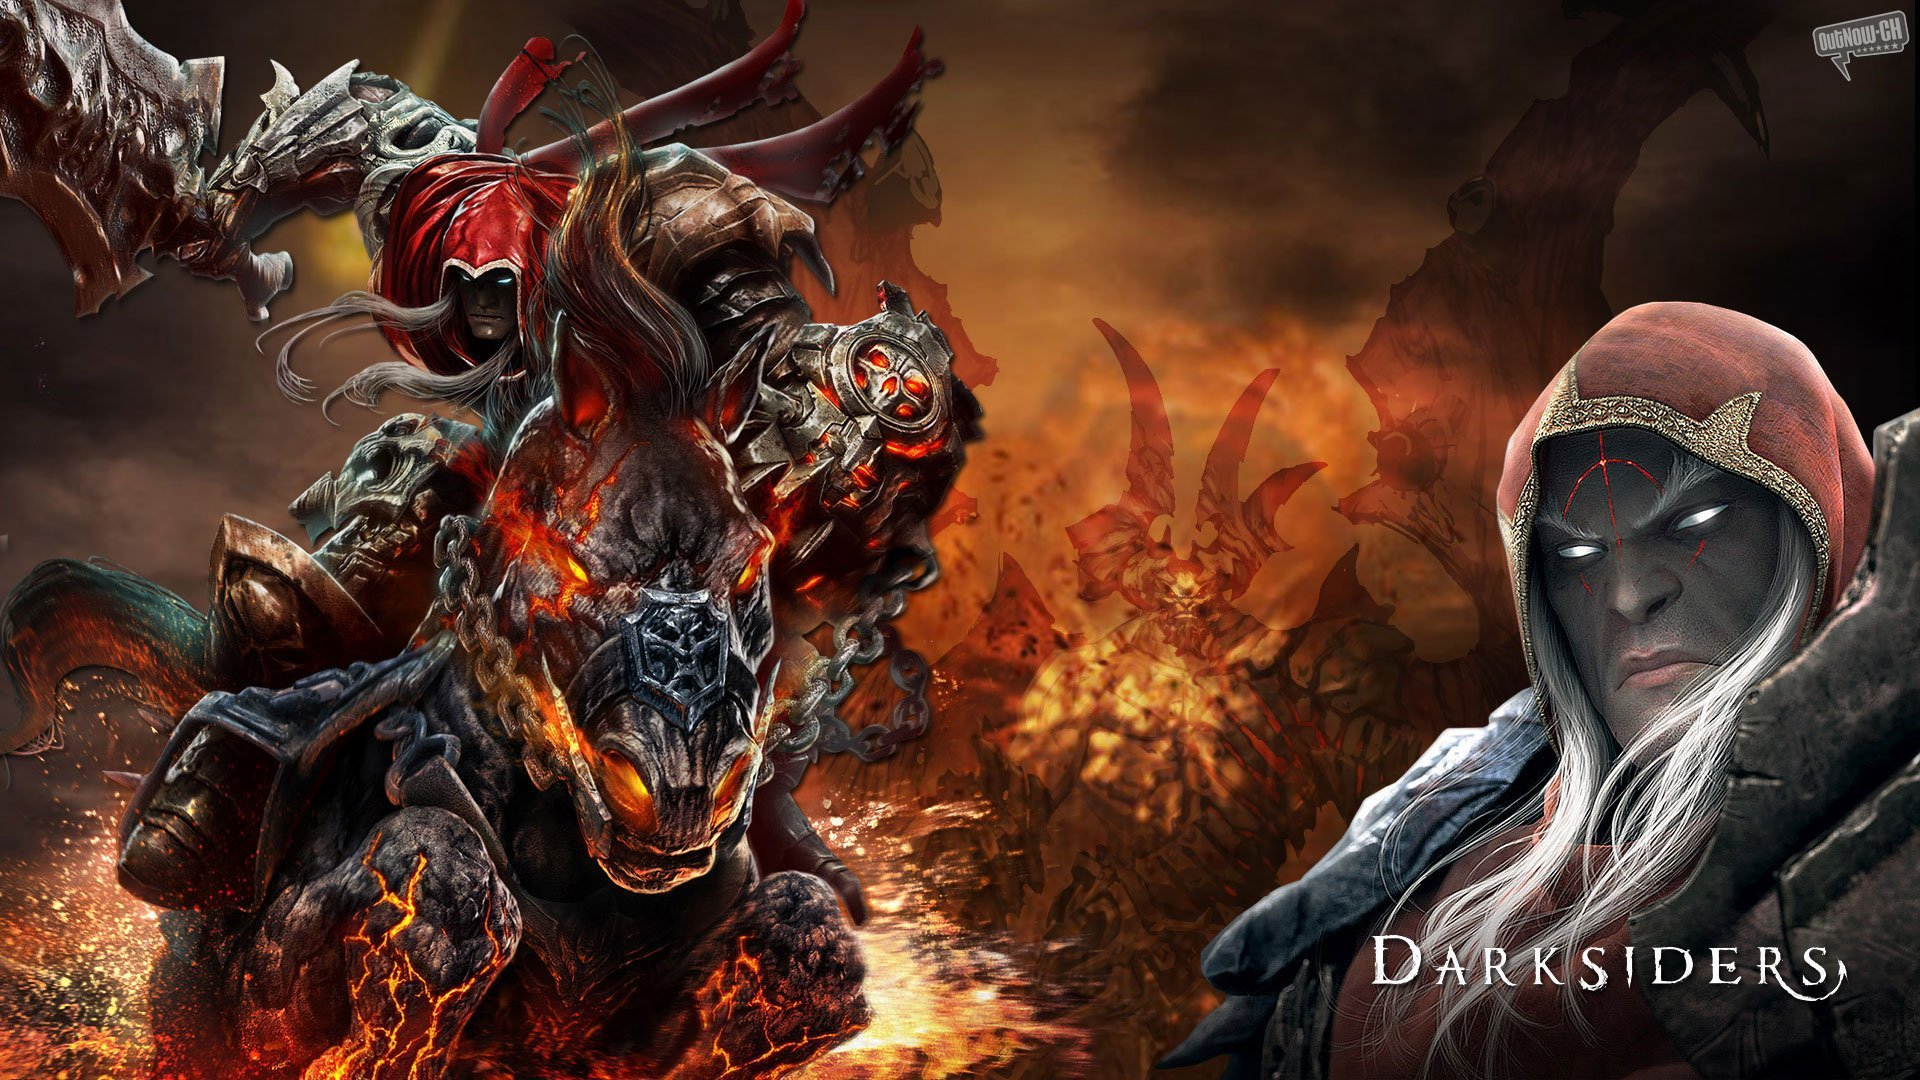 imgwallpaperstocknet81darksiders wallpapers 28680 1920x1080jpg 1920x1080